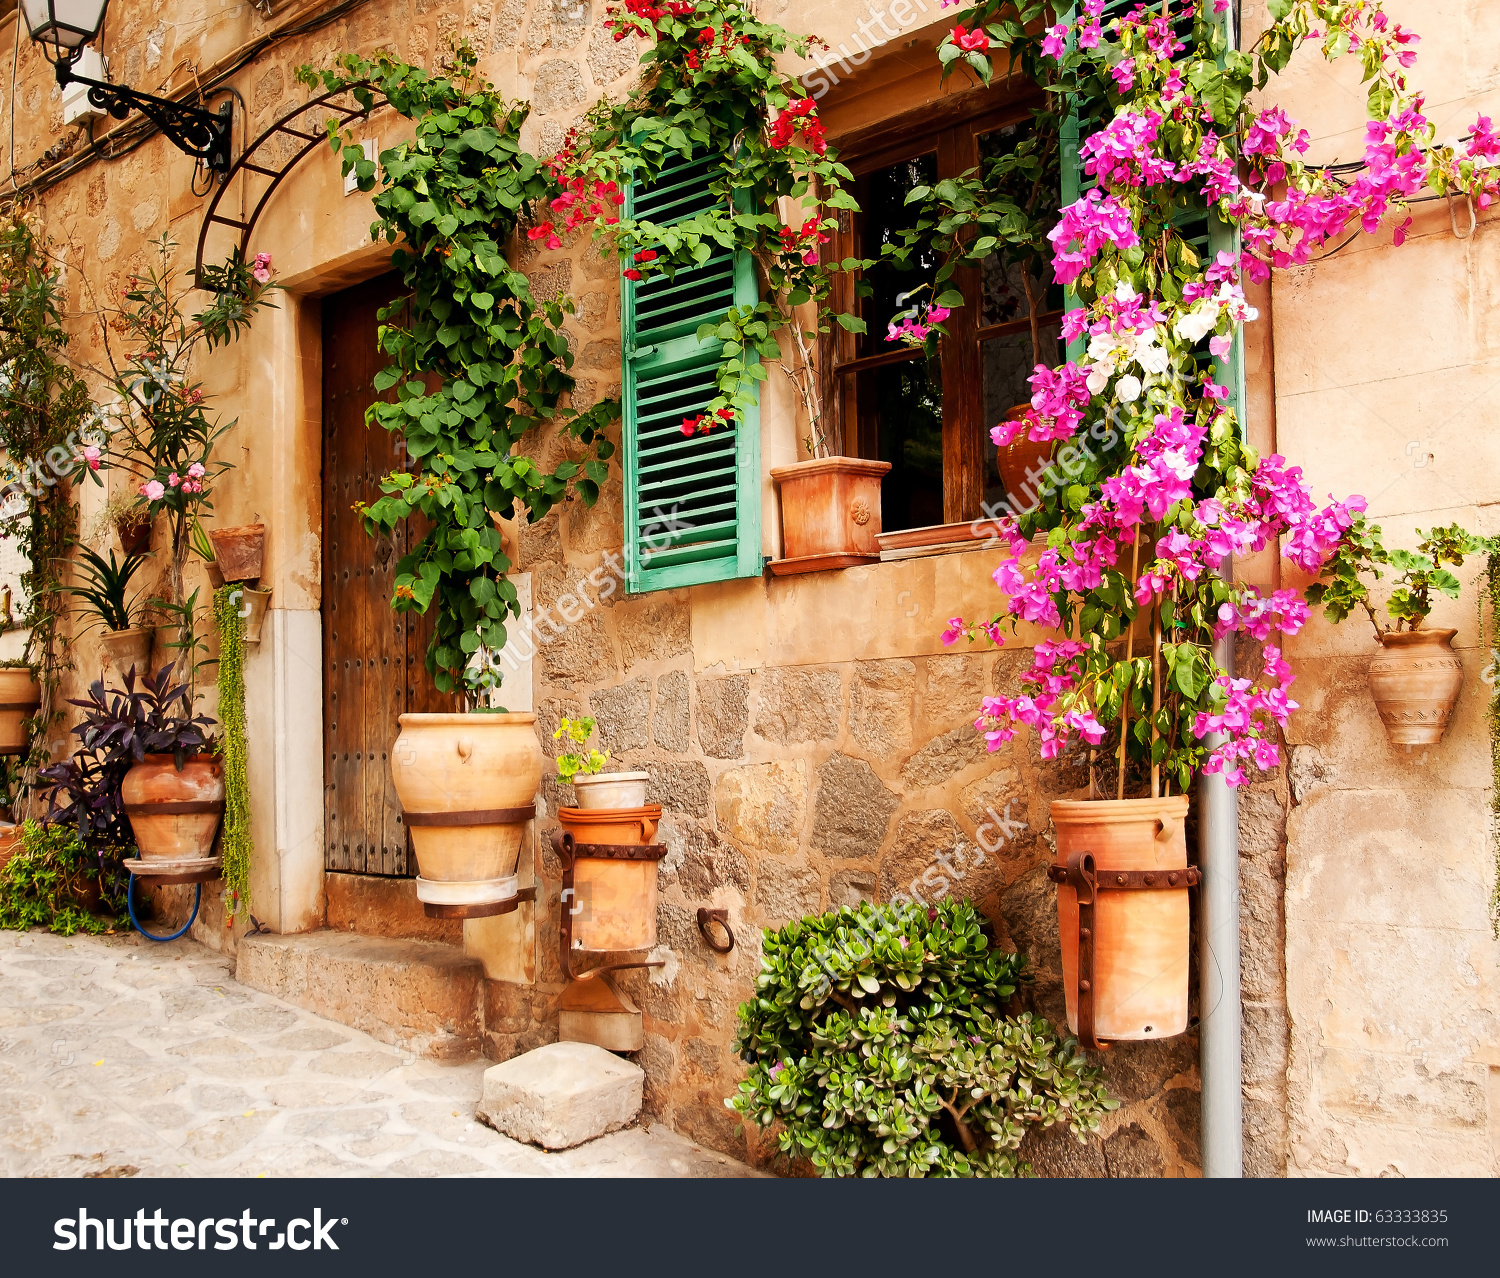 Mediterranean Village Stock Photo 63333835.